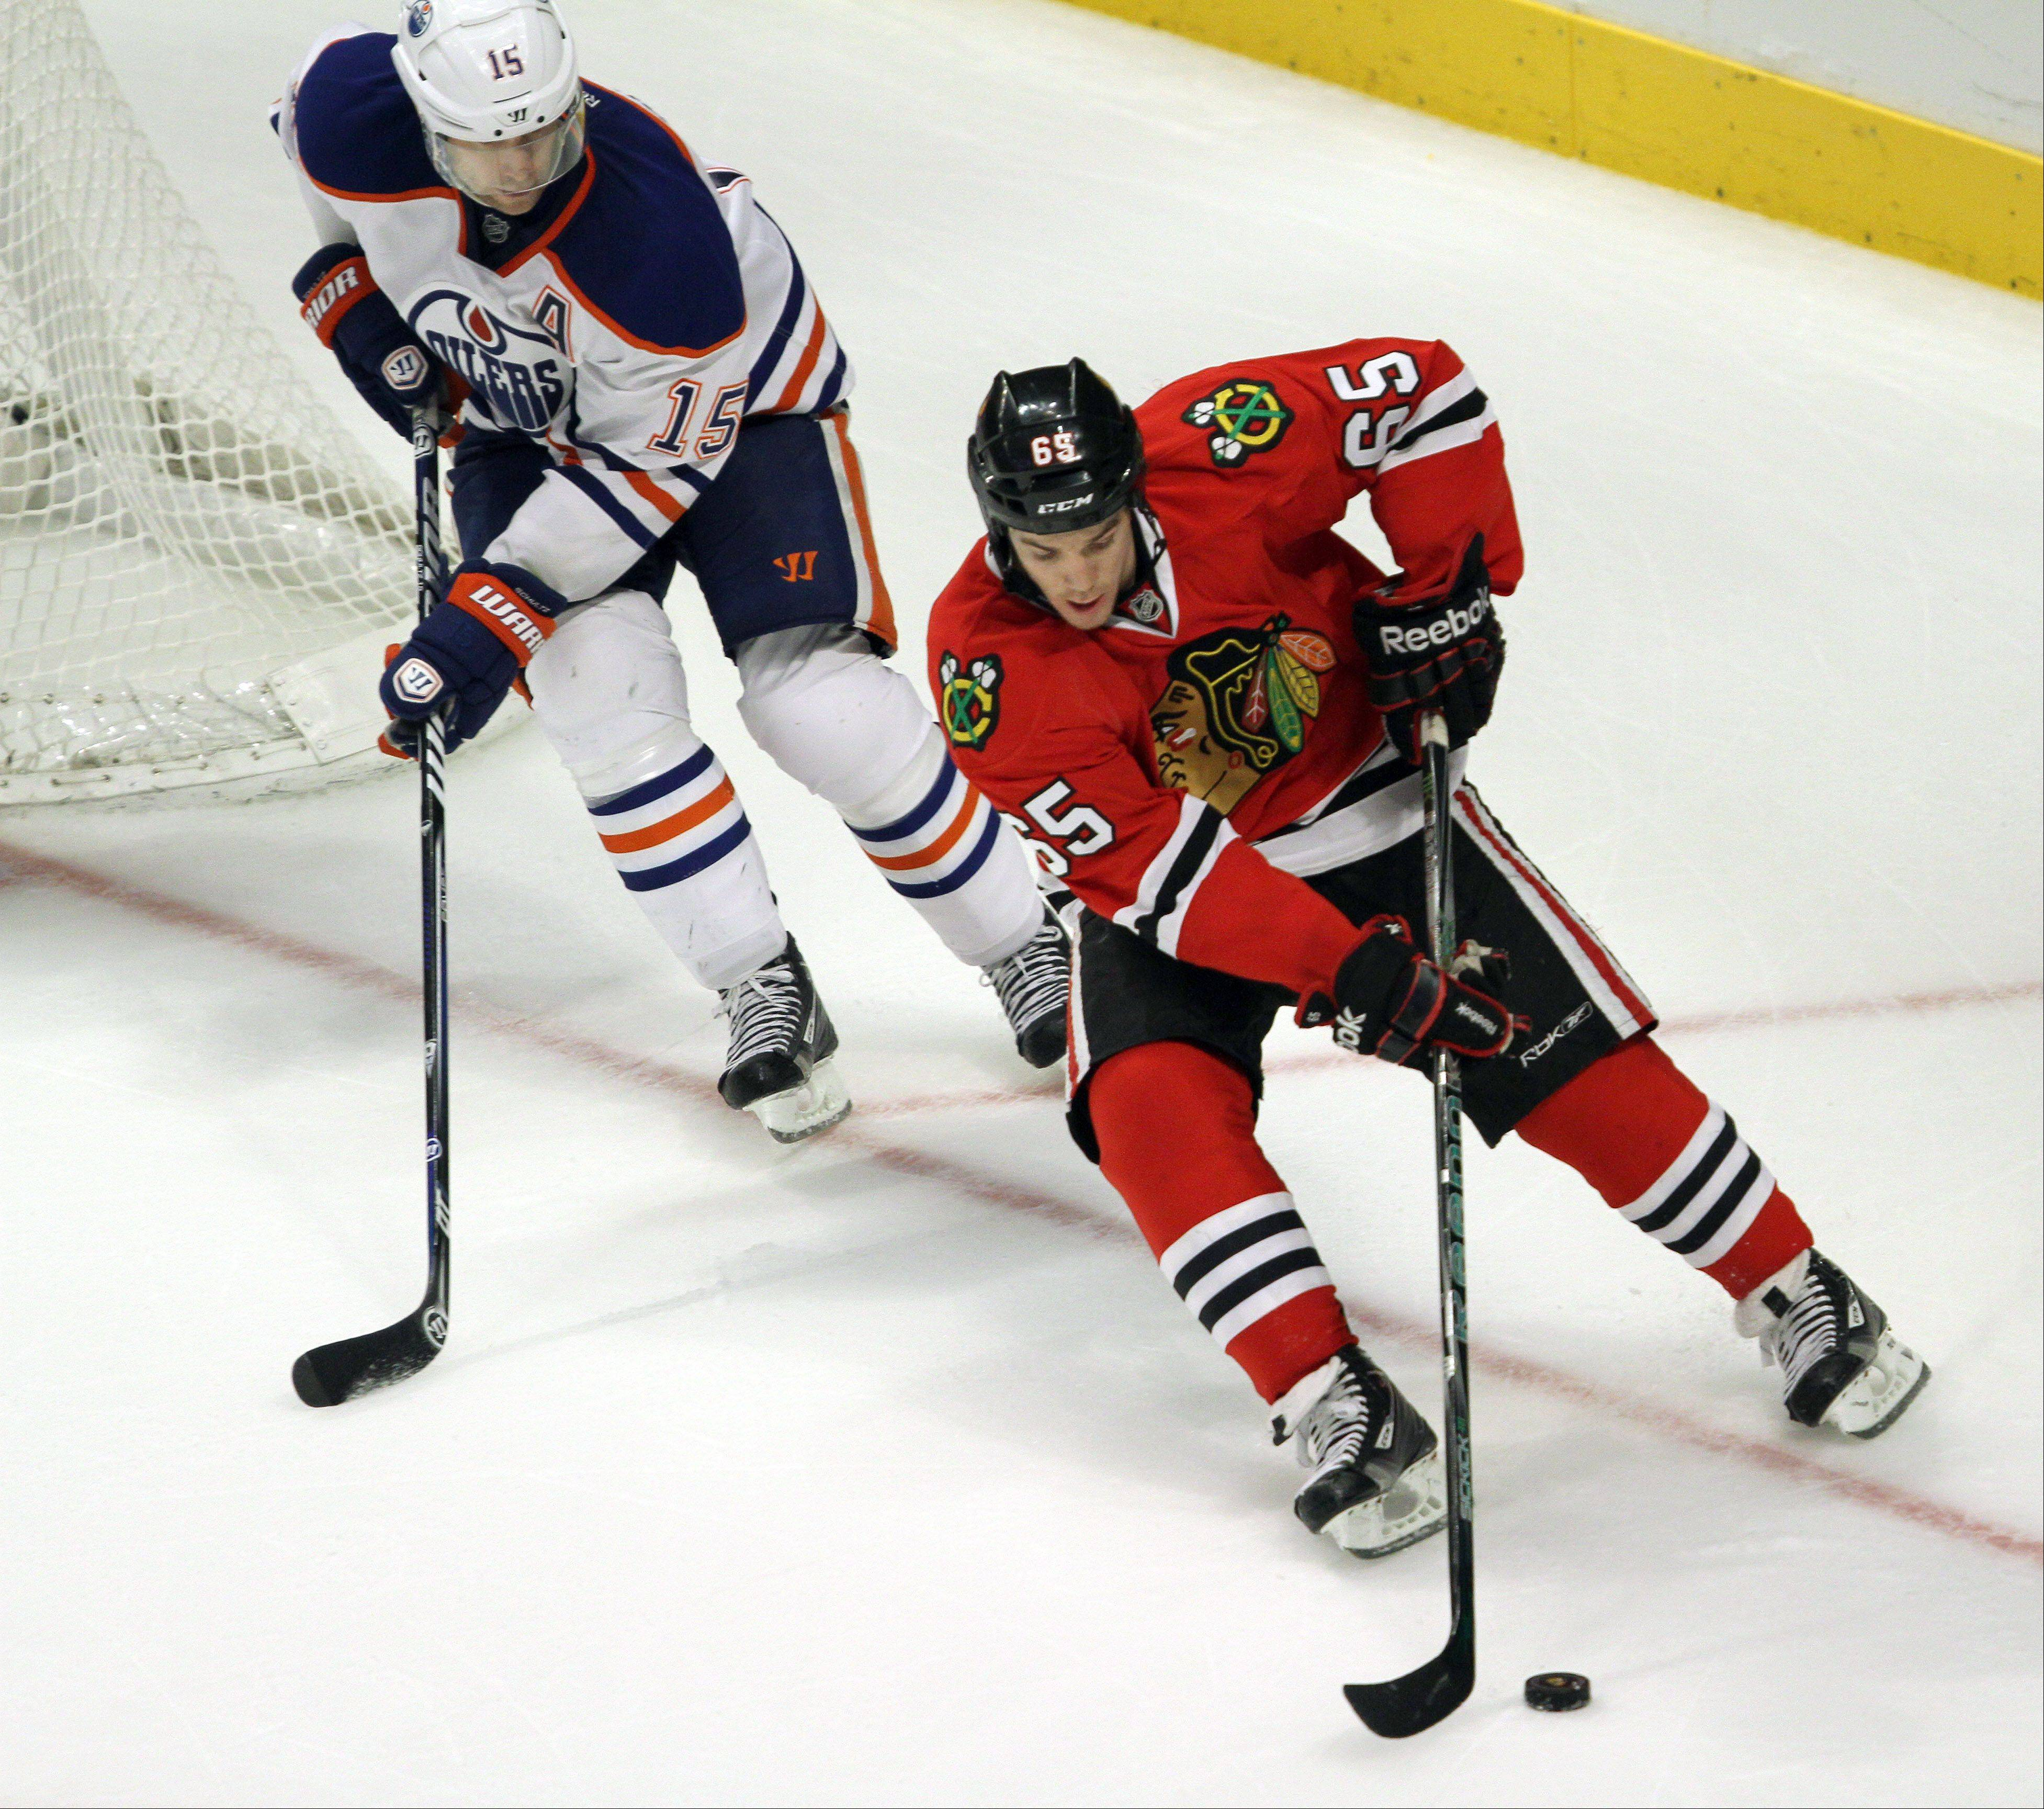 Chicago Blackhawks left wing Viktor Stalberg maneuvers around Edmonton Oilers defenseman Nick Schultz during their game Sunday night at the United Center in Chicago.